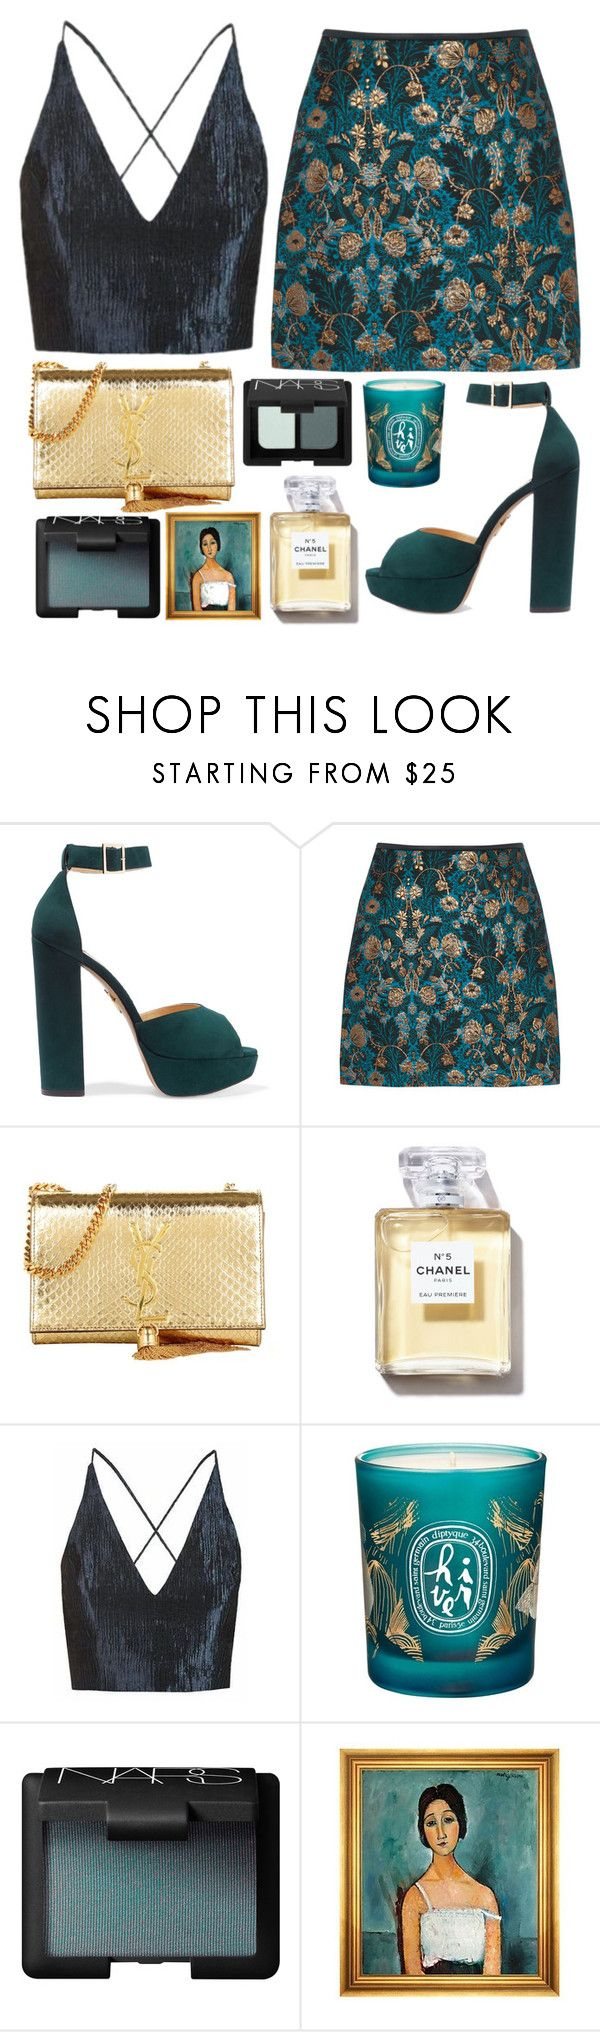 """""""02.20"""" by mariimontero ❤ liked on Polyvore featuring Charlotte Olympia, Yves Saint Laurent, Chanel, Topshop, Diptyque, NARS Cosmetics and Munn Works"""